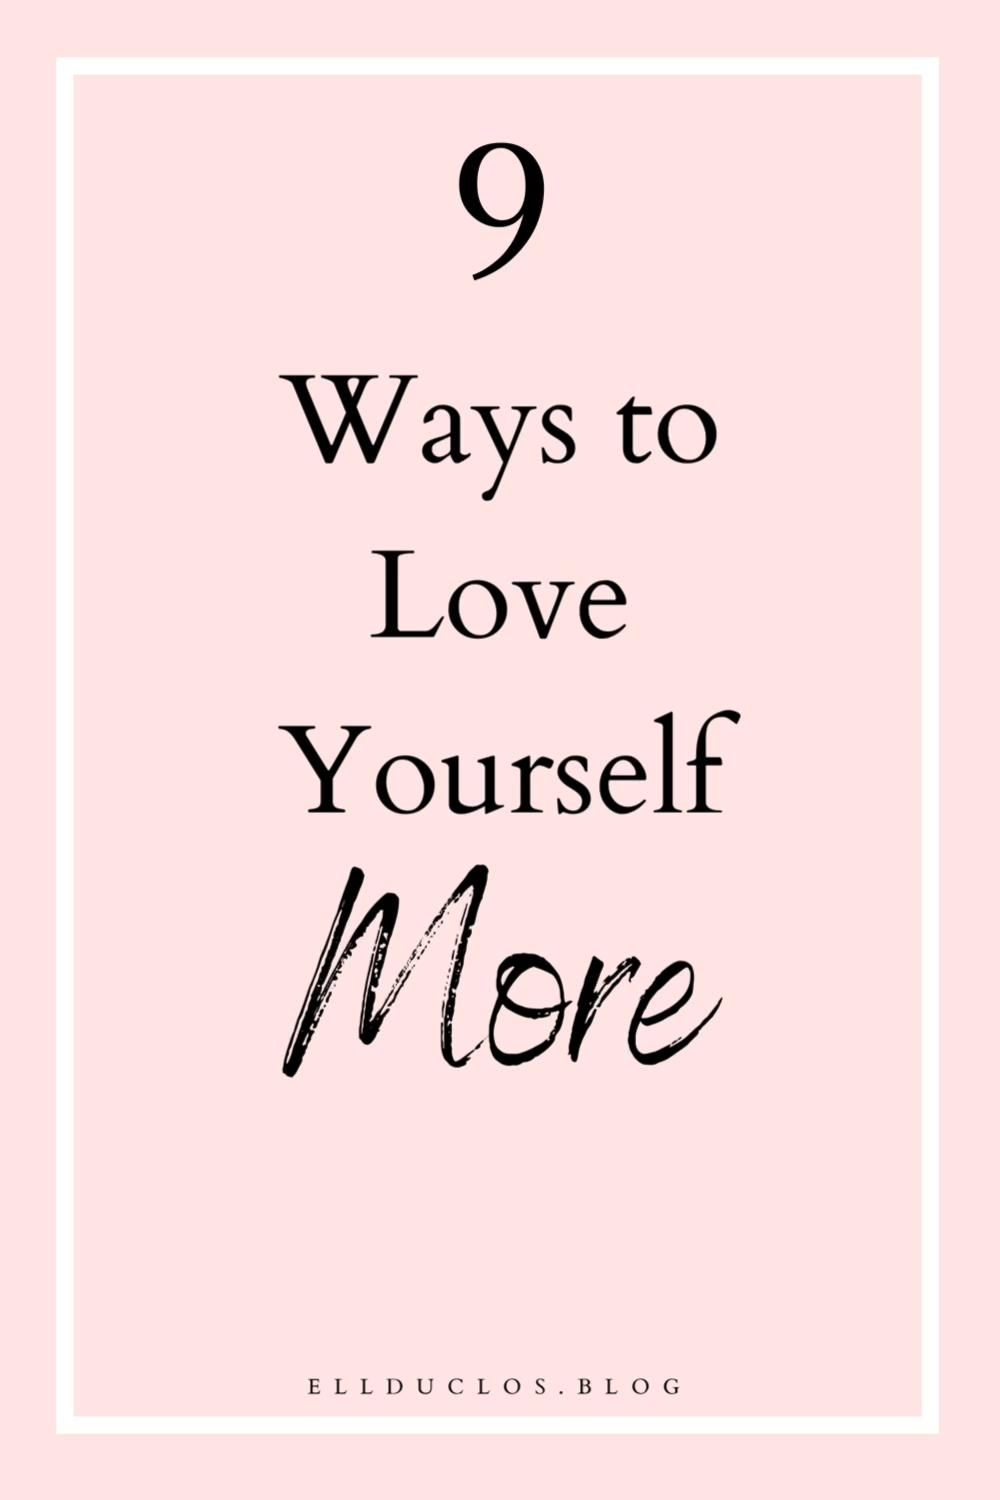 How to Love Yourself: 9 Best Ways to Love Yourself Again